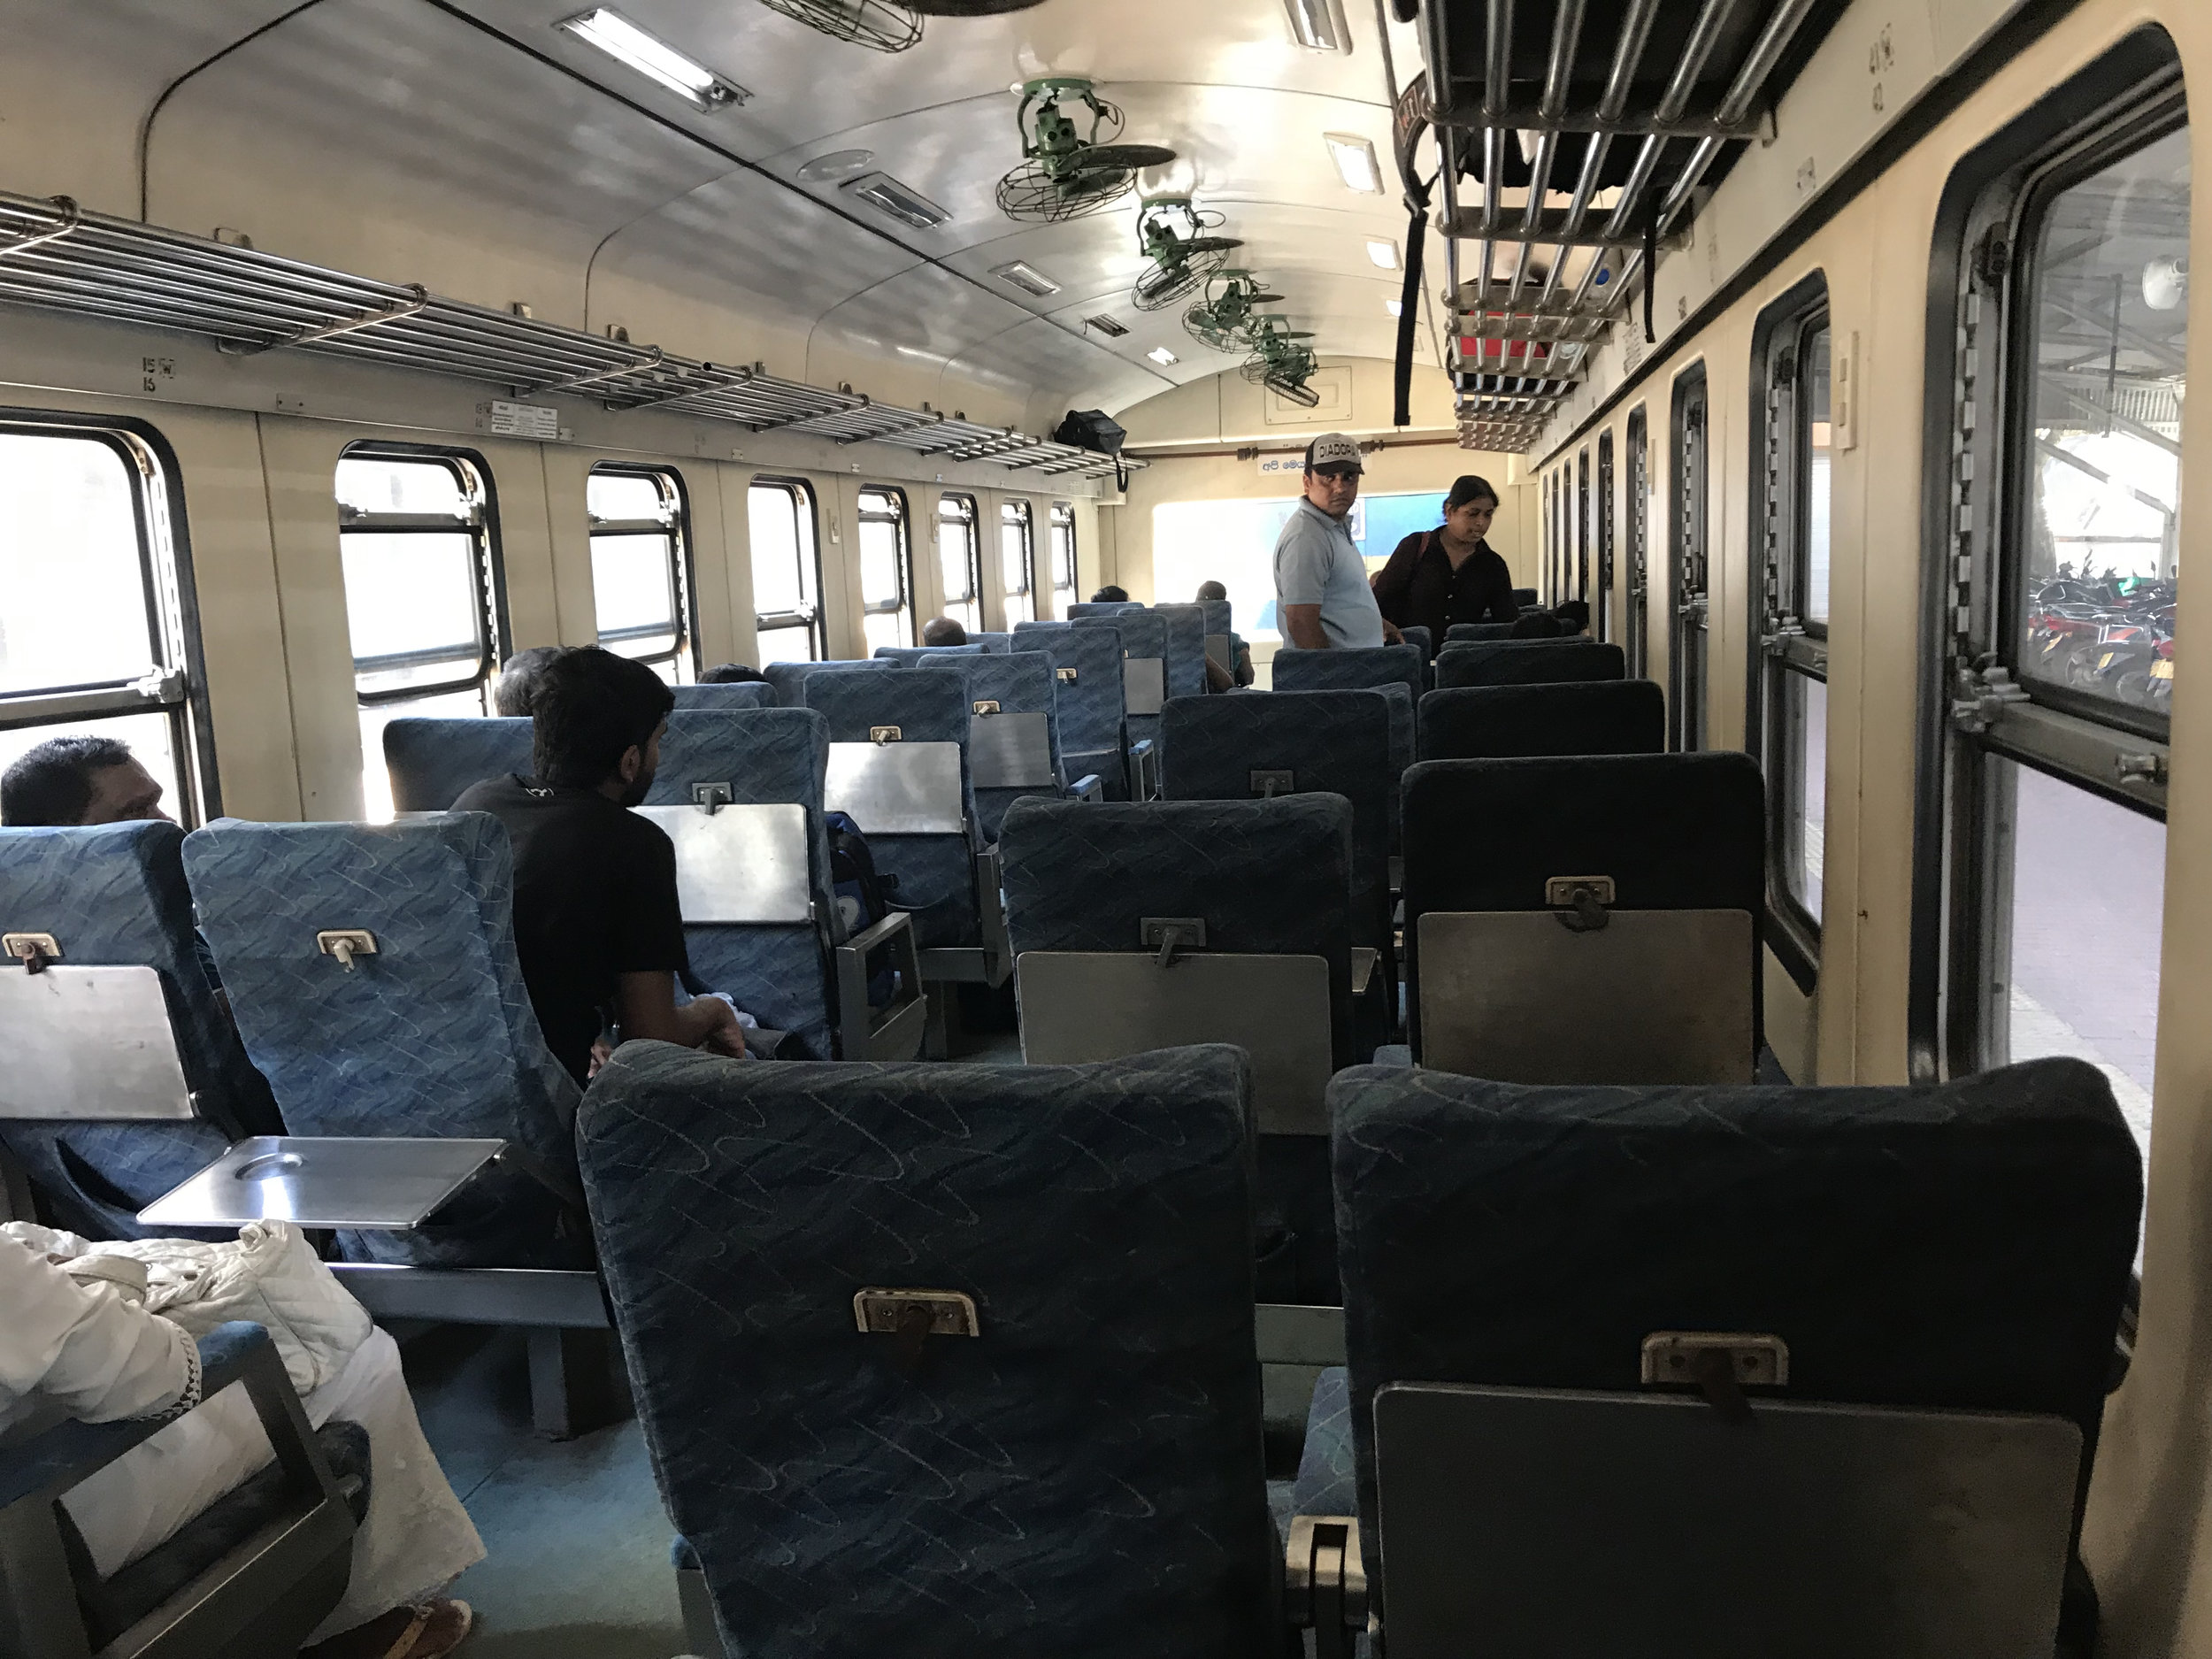 A view from my seat on the train to Colombo. In one of the first-class cabins, there's much more leg room than on a typical passenger plane. Fans above help cool down the space, but virtually every window was open on the journey.